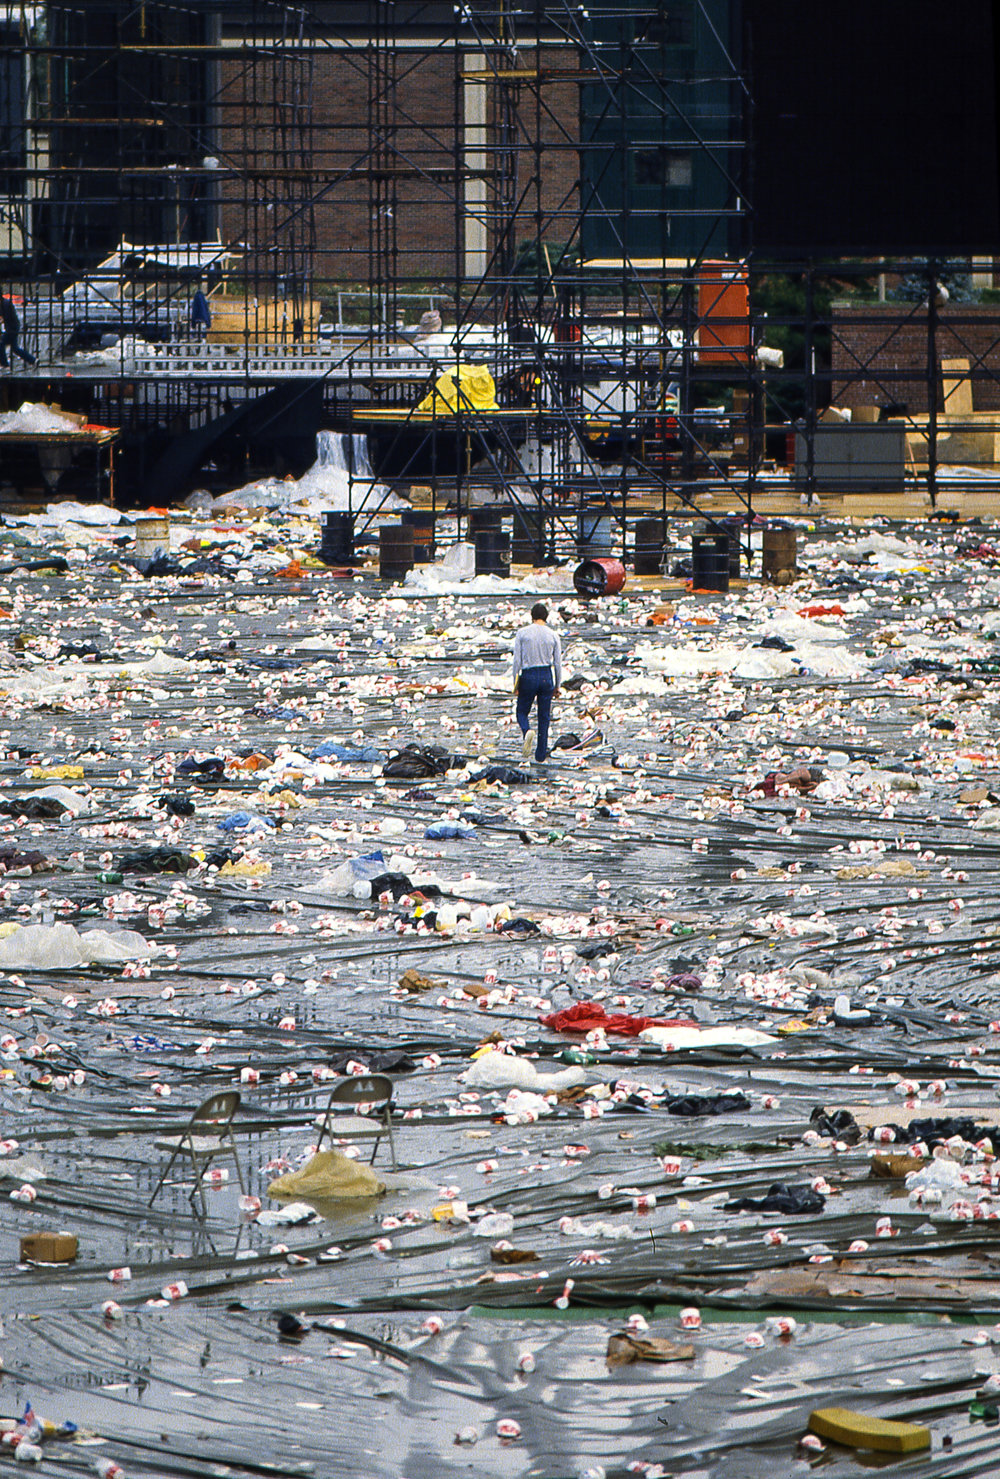 Garbage covers the ground in Memorial Stadium the morning after the Farm Aid concert in Champaign, Ill. Sept. 22, 1985. [File/The State Journal-Register]